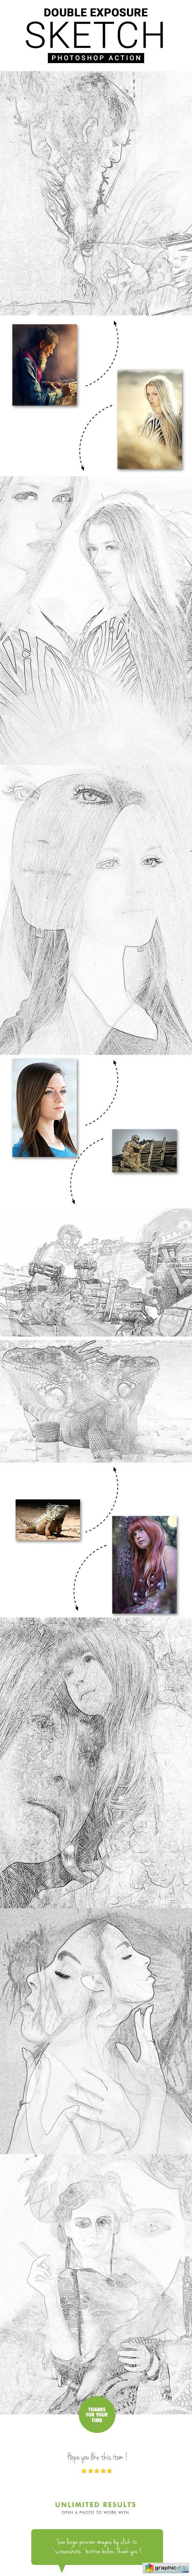 Double Exposure Sketch Photoshop Action